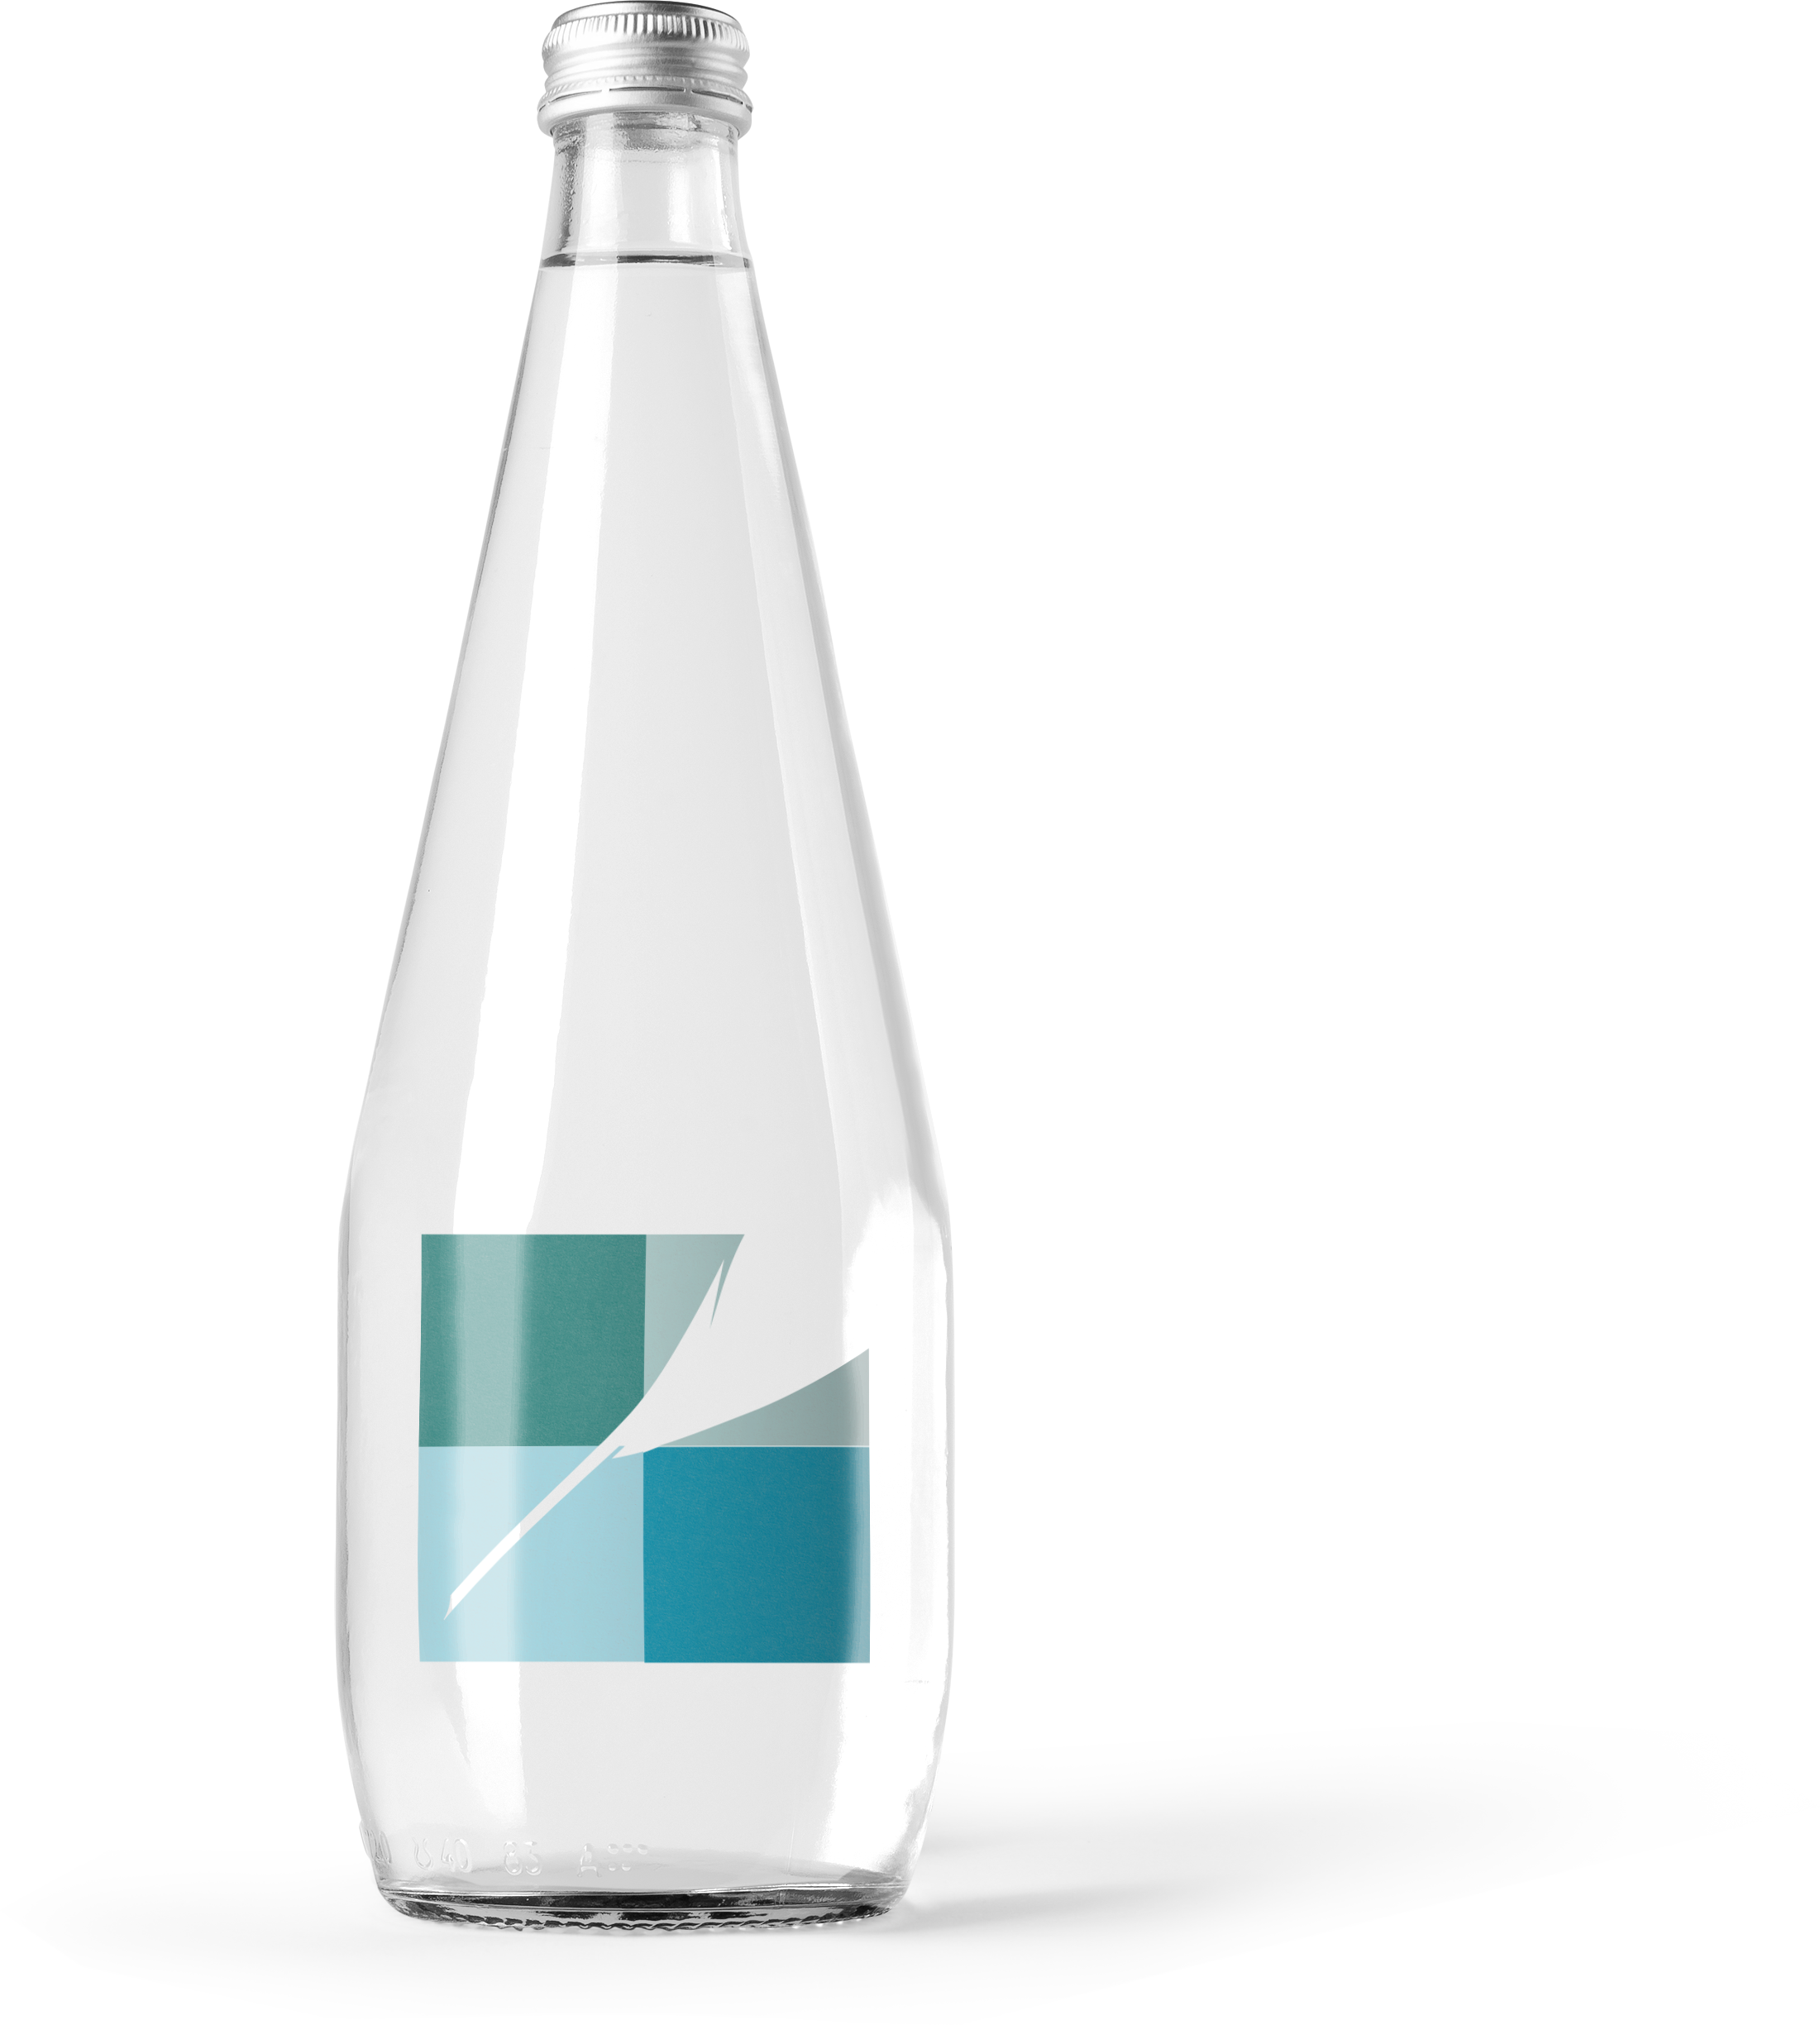 clear water bottle with meticulous graphics logo